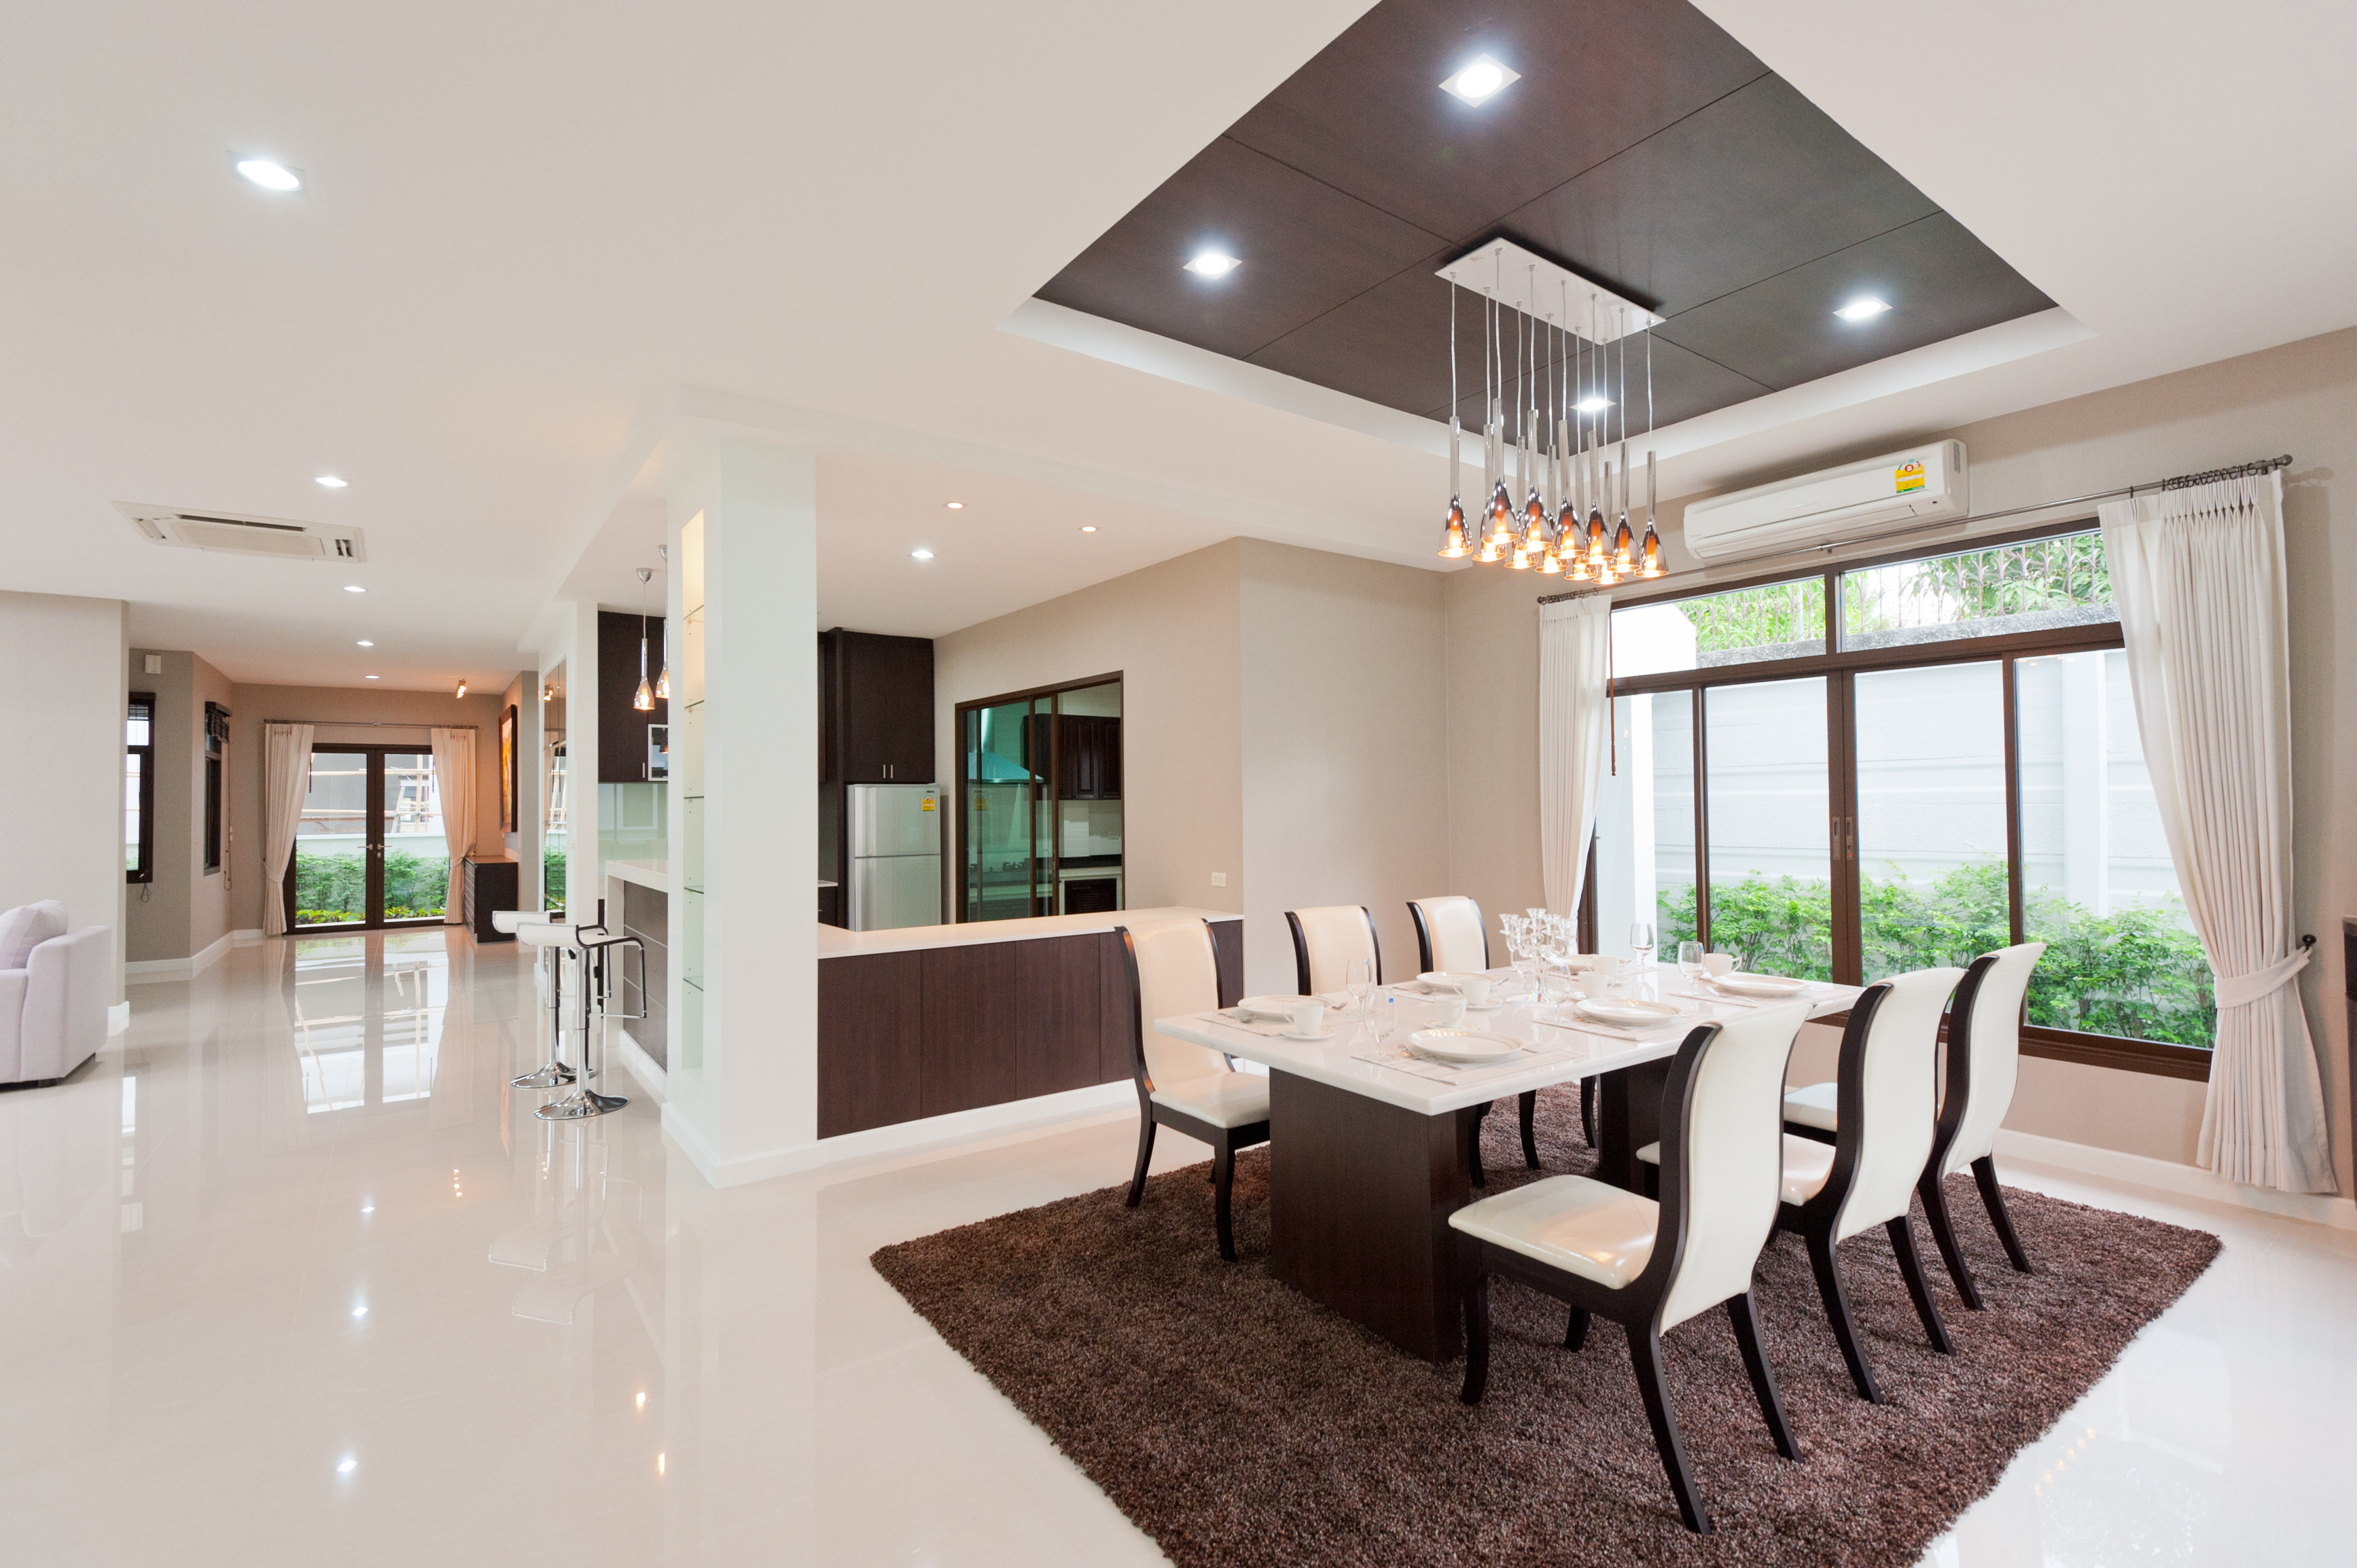 Lighting System For Your Home